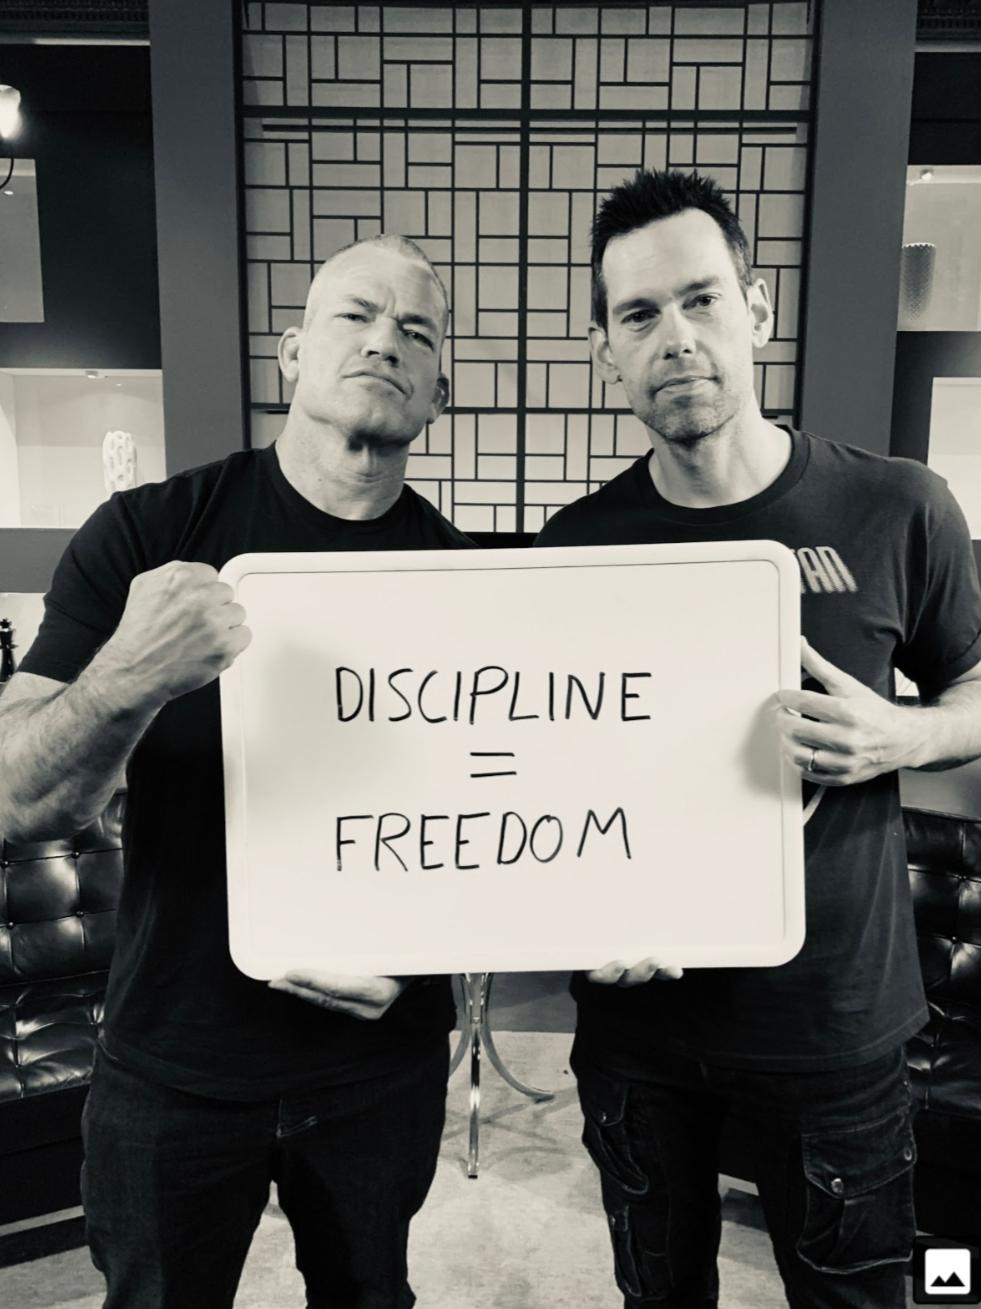 [Image] My lockscreen picture. Jocko Willink and Tom Bilyeu, two extremely hard working men.